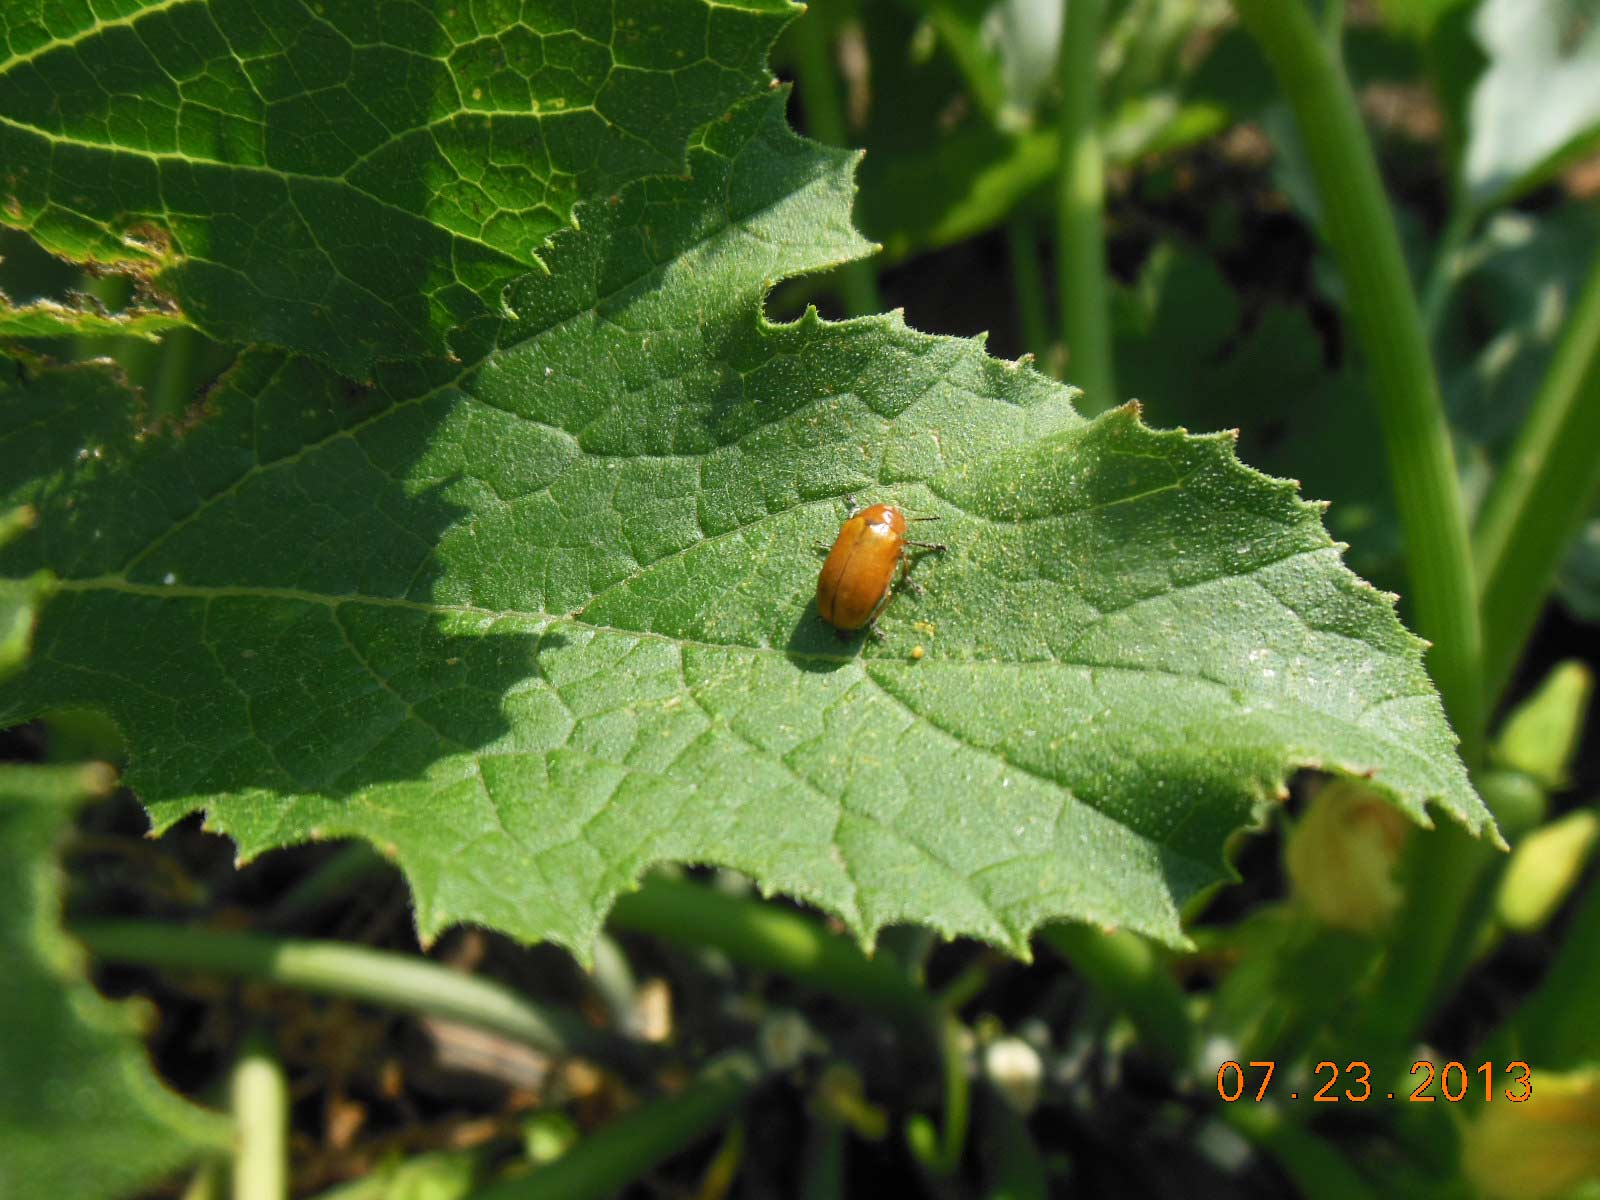 Asiatic garden beetle on squash no problem He doesn't like the taste.